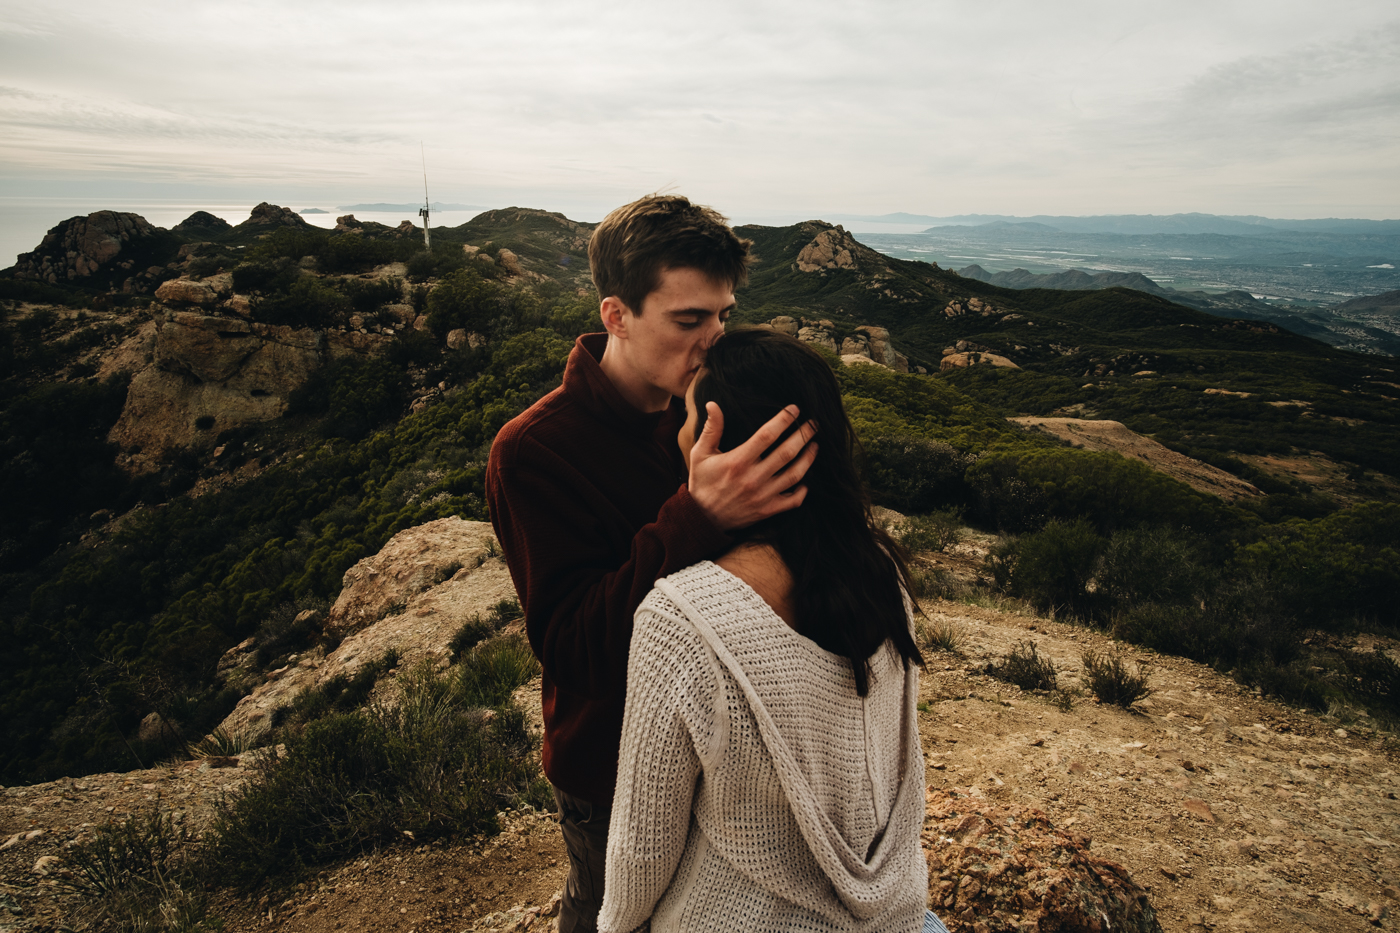 Baliey+Thomas.Engagement.Santamonicamountains©mileswittboyer.com2018-26.jpg